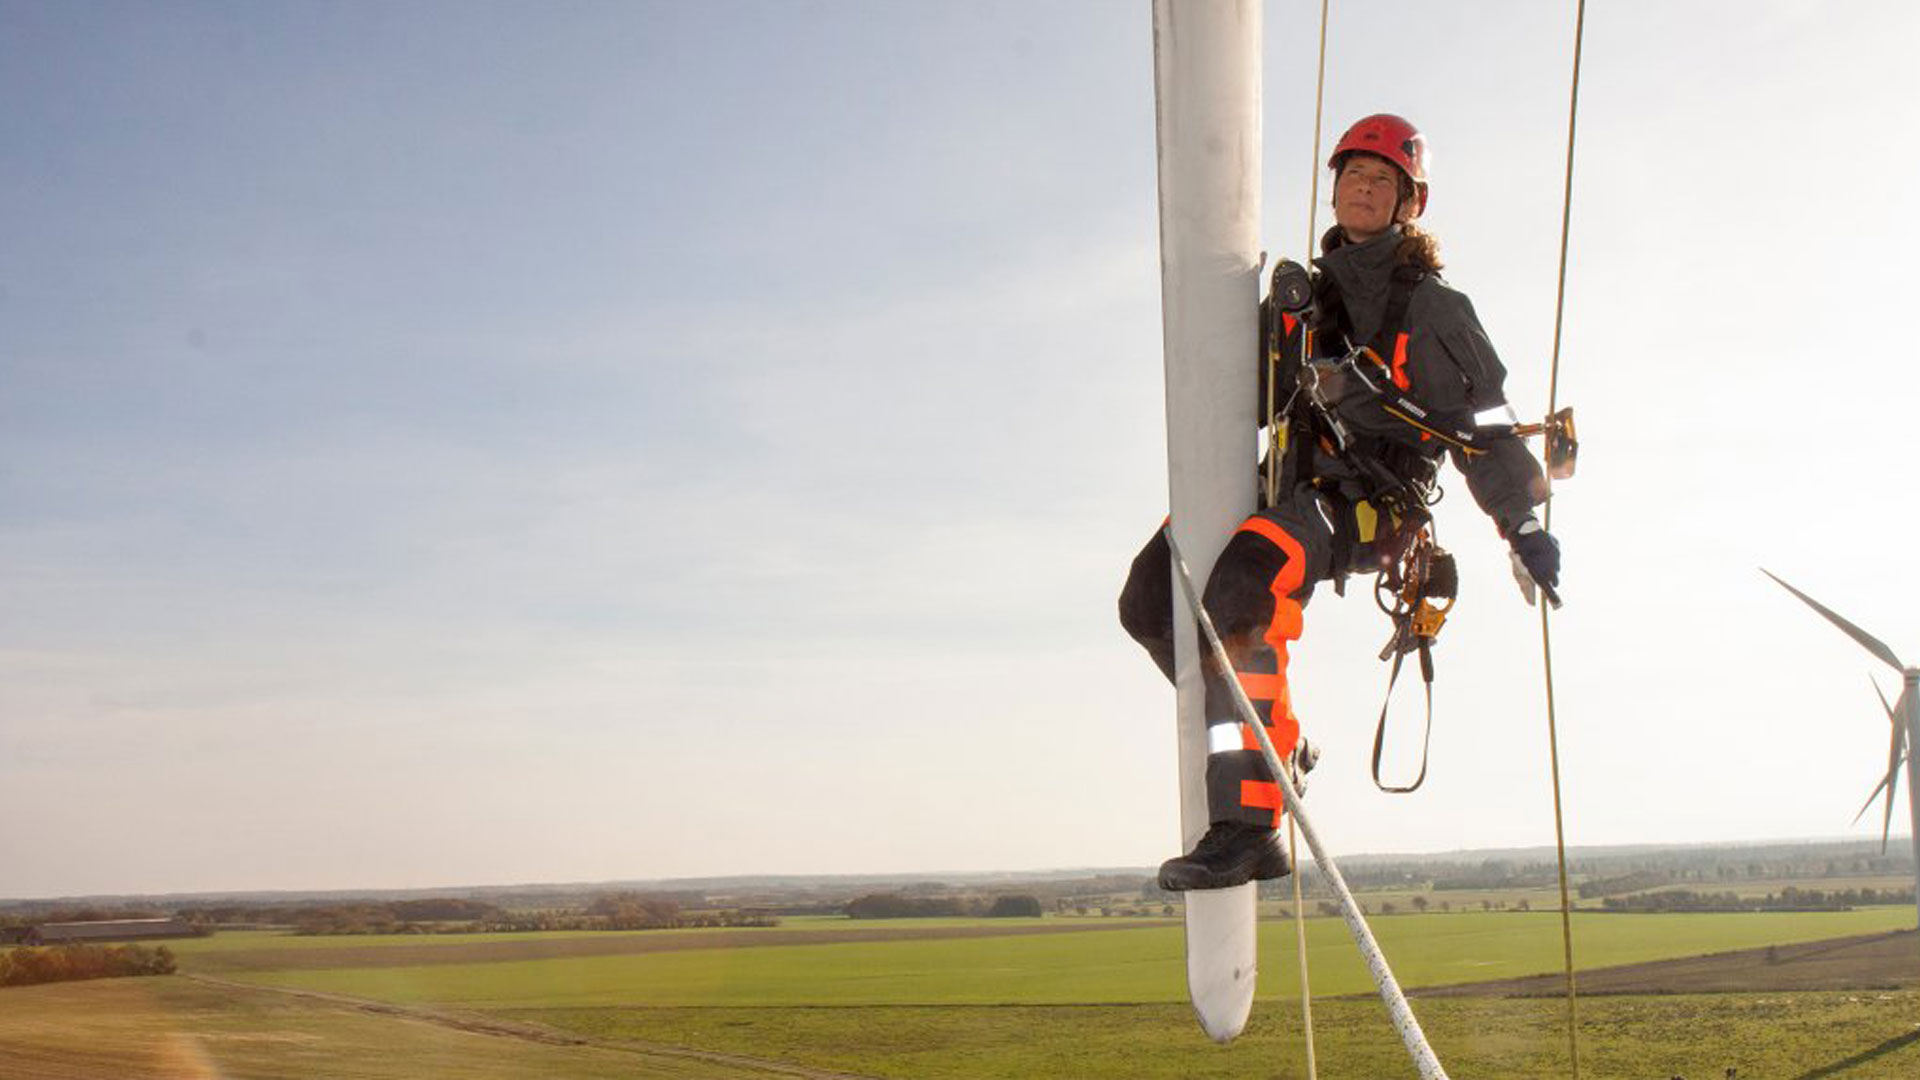 Rikke Juul Balle hanging from a turbine